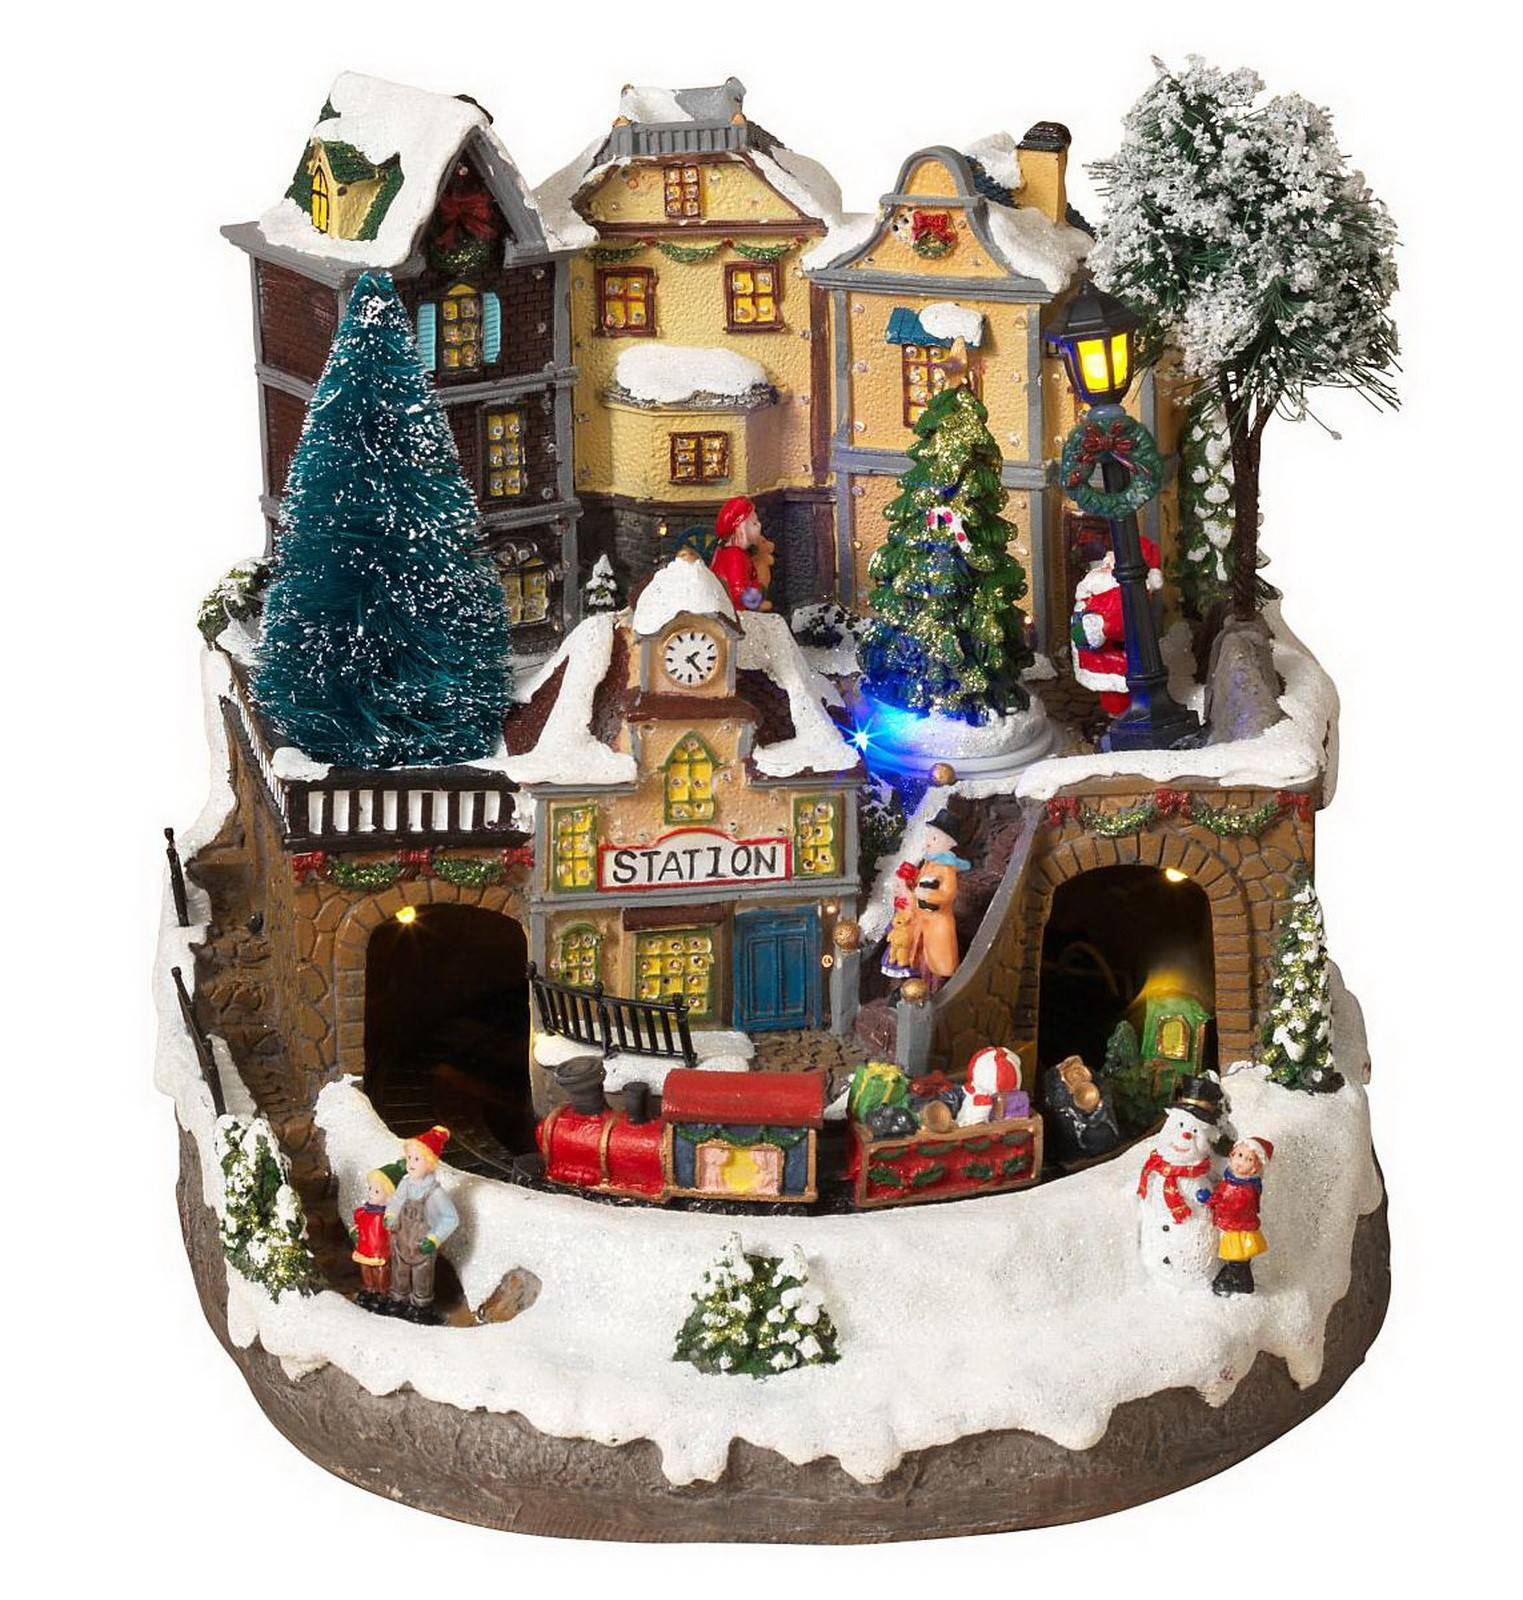 Musical Fiber Optic Christmas Village Decoration Lighted Display Houses Train Station